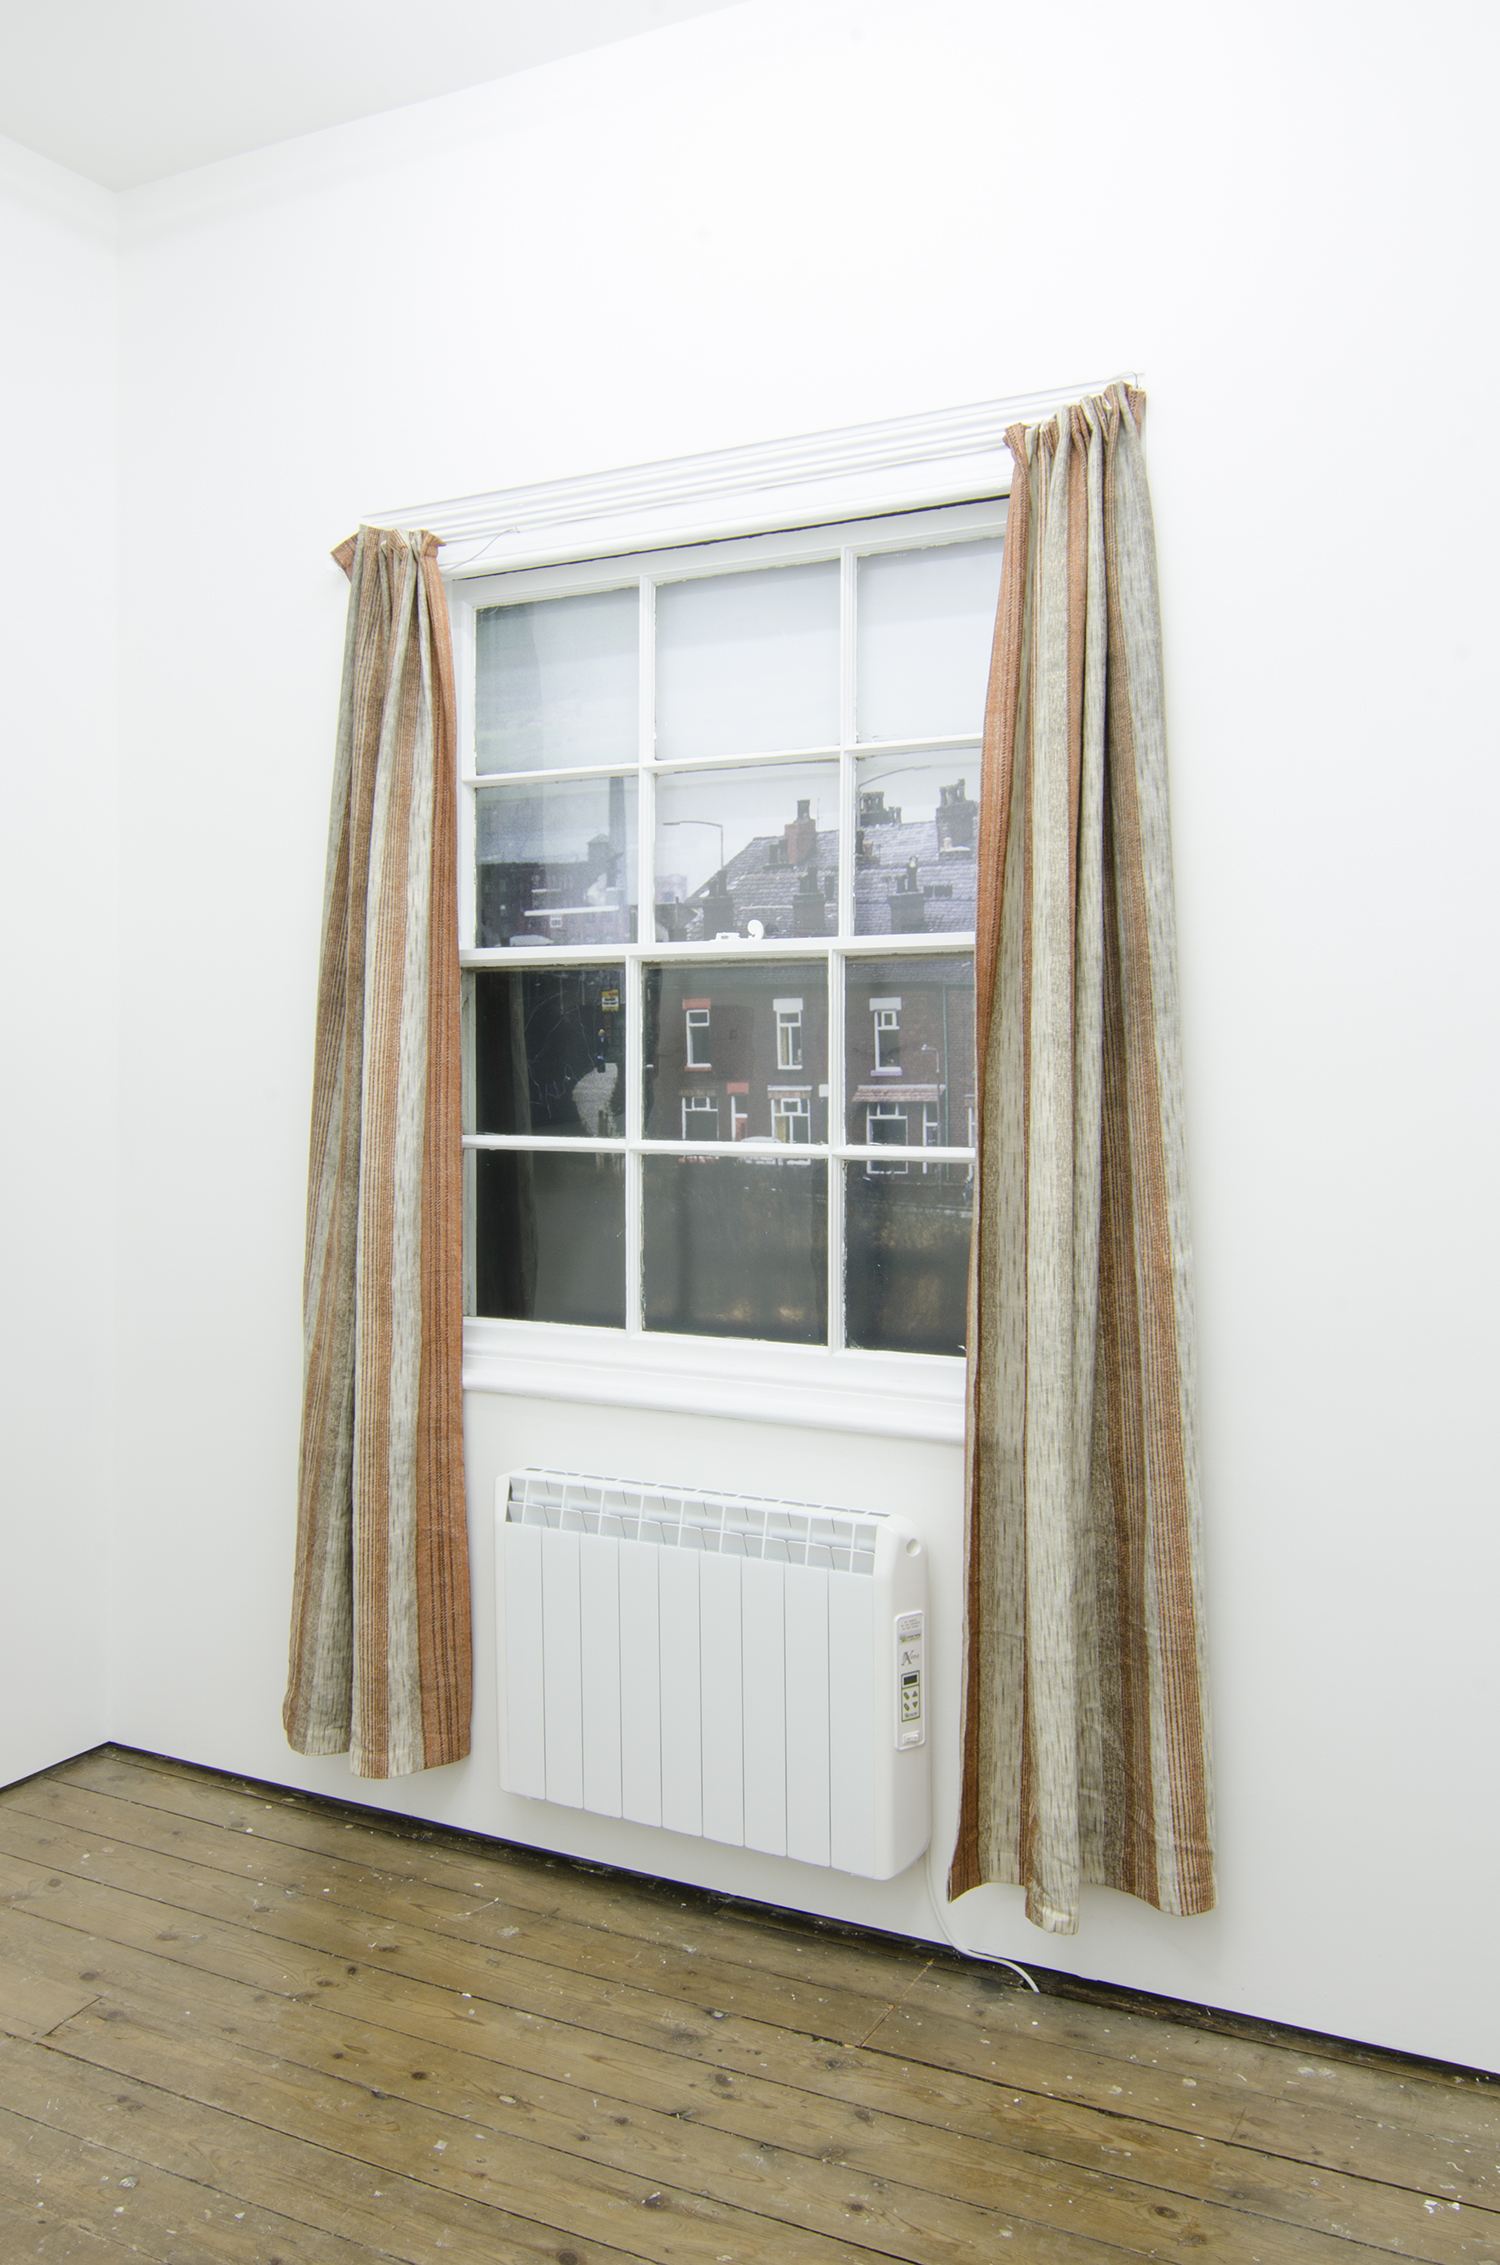 Andrew Munks   A window into 1976 (1) (Bulmer vision)   2016   Encapsulated inkjet print on wood panel, curtains, cable.   Dimensions variable